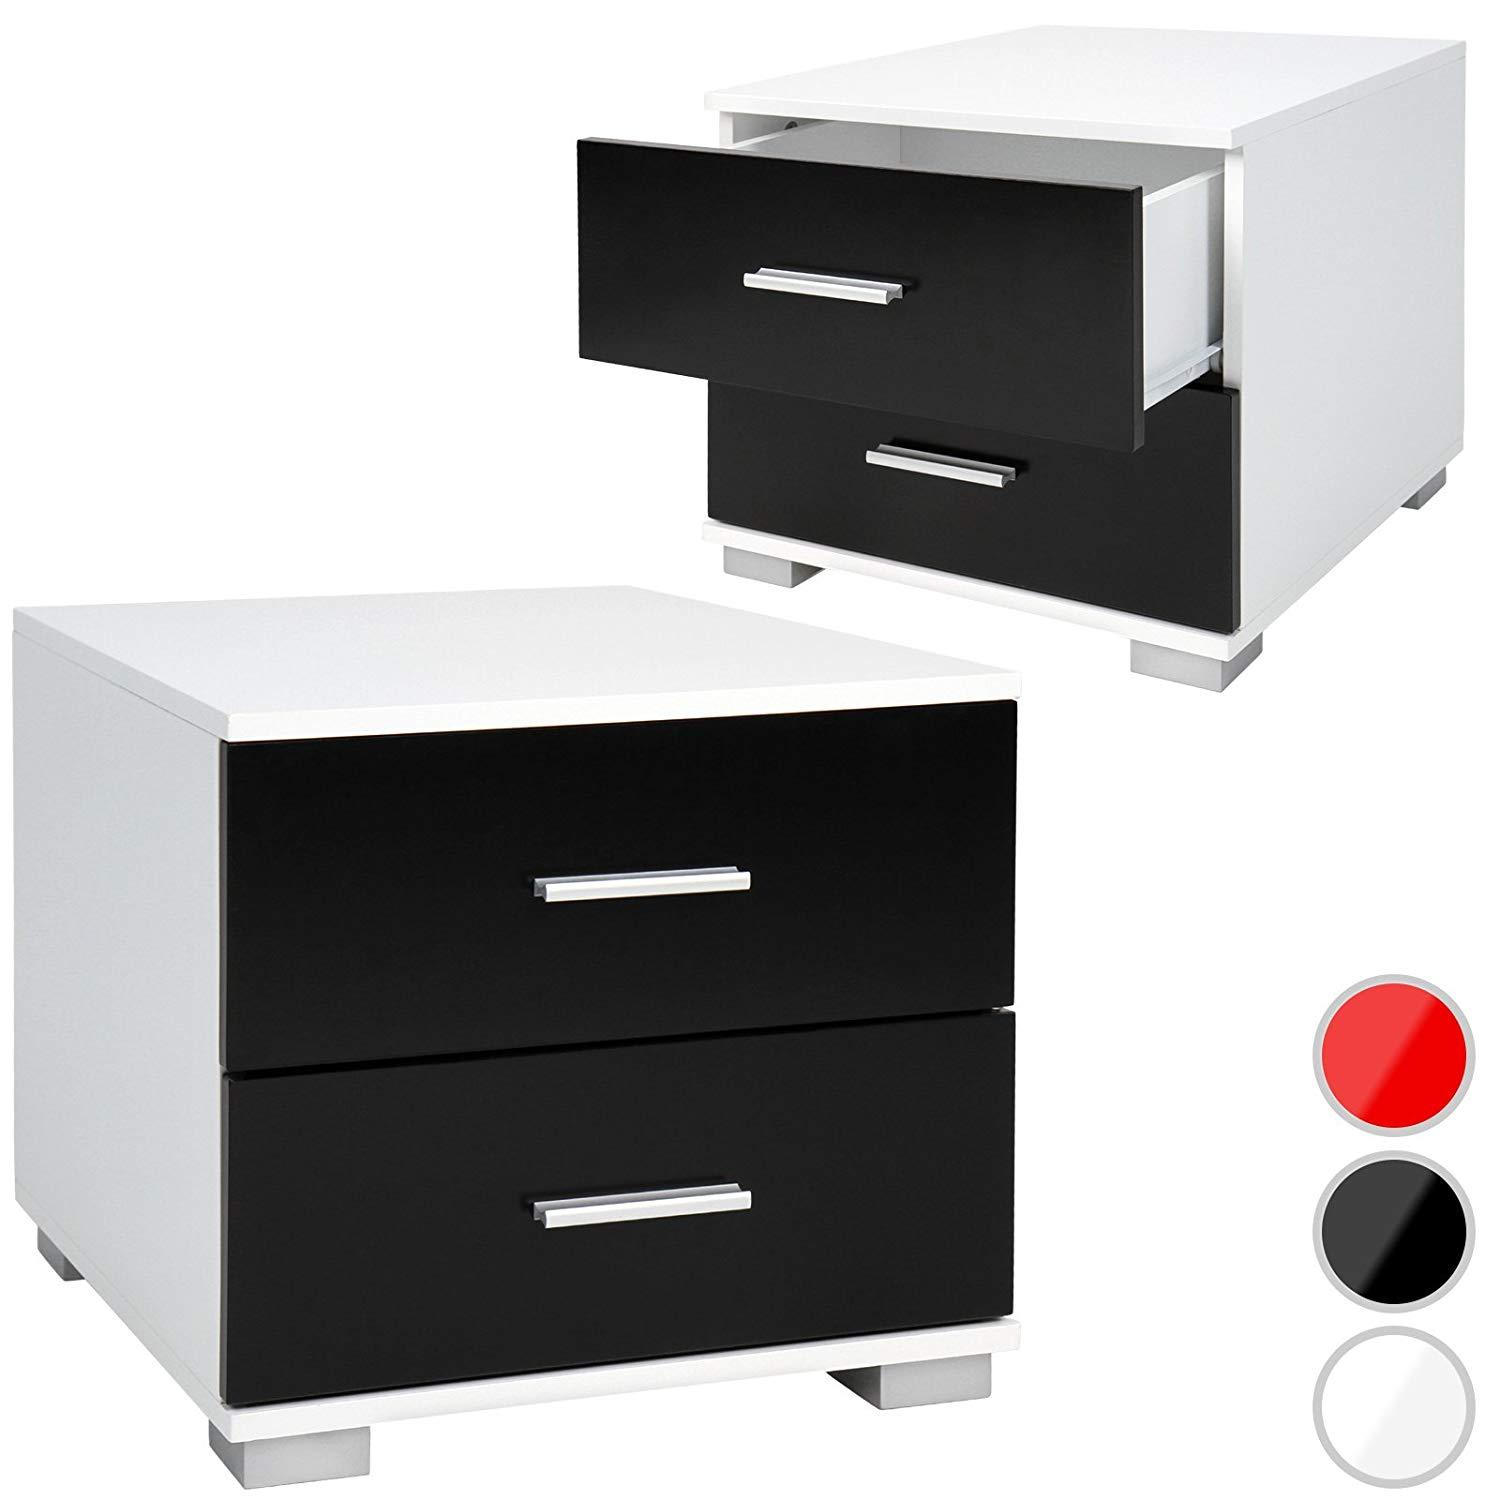 2 Drawers Bedroom Bedside Table Bedside Table Bedside Table Night Table - Choice of Colour and Set: Amazon.de: Küche & Haushalt